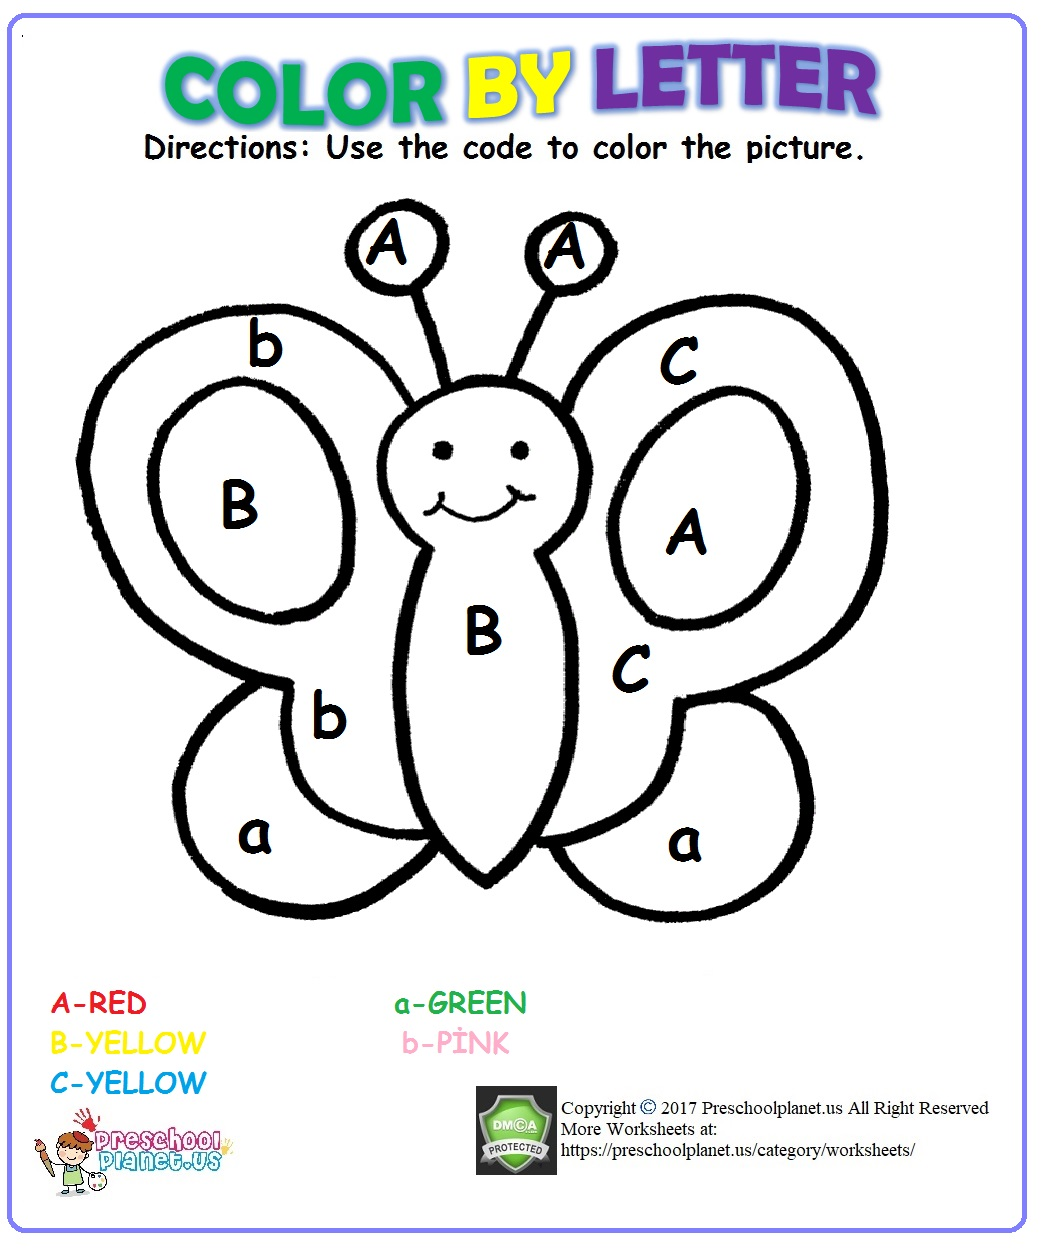 color by letter worksheet for kids